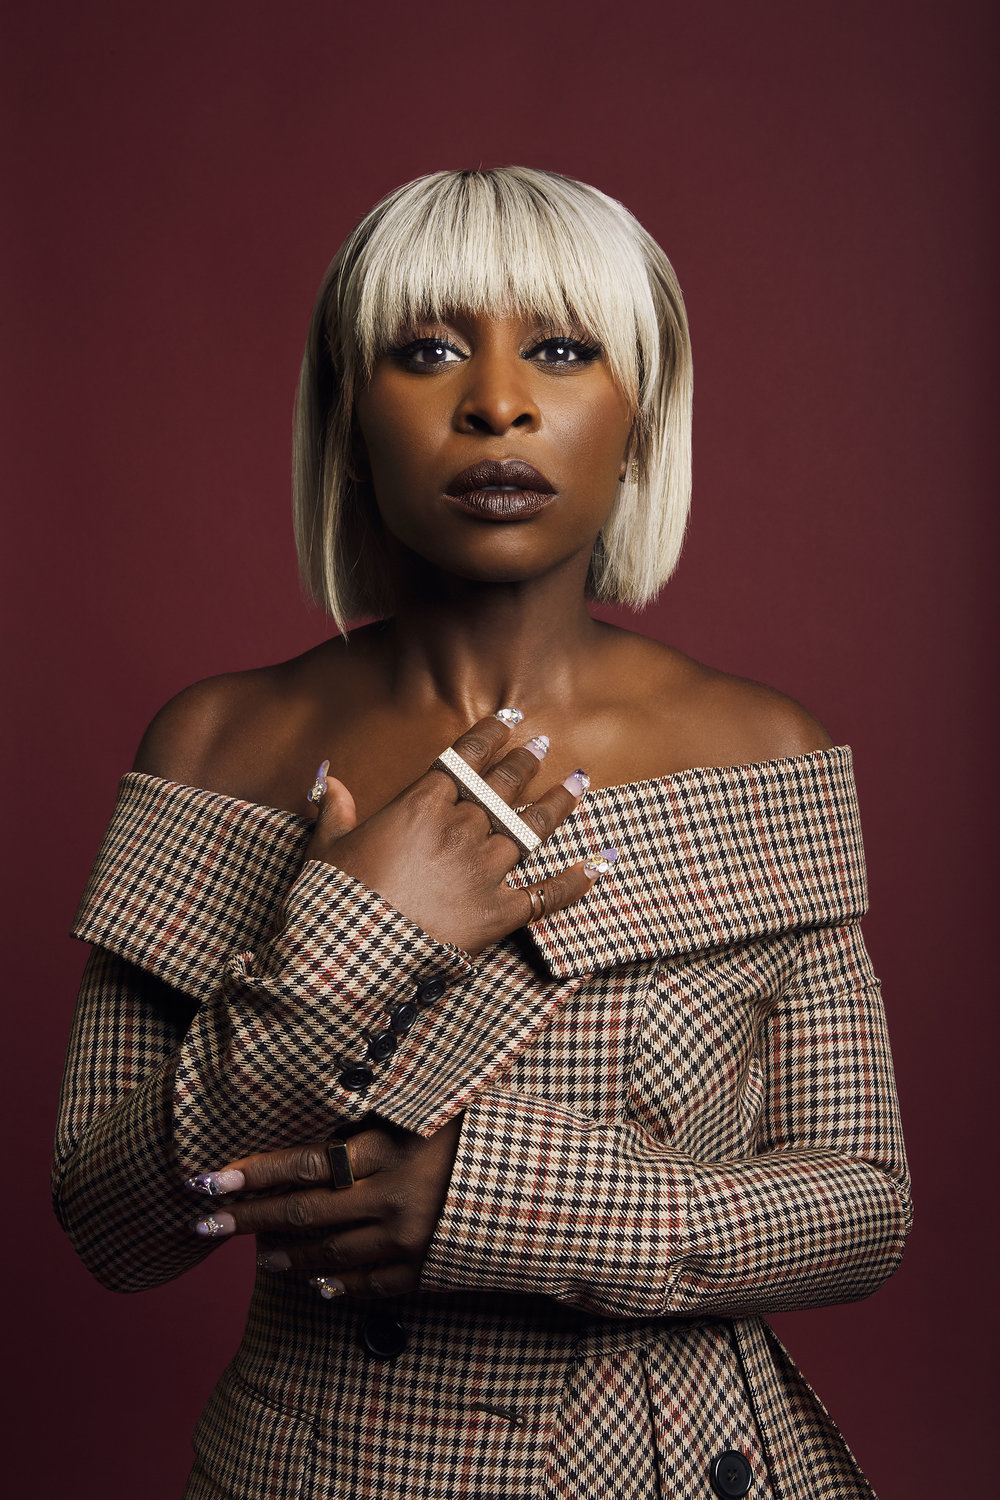 Cynthia Erivo Photo credit: Emily Assiran for Backstage Magazine; Hair: Coree Moreno; Makeup: Joanna Simkin; Stylist: Sarah Slutsky; Manicurist: Eri Ishizu; Retouching: Stephanie Price; Shot on location at The Knickerbocker Hotel, NYC.